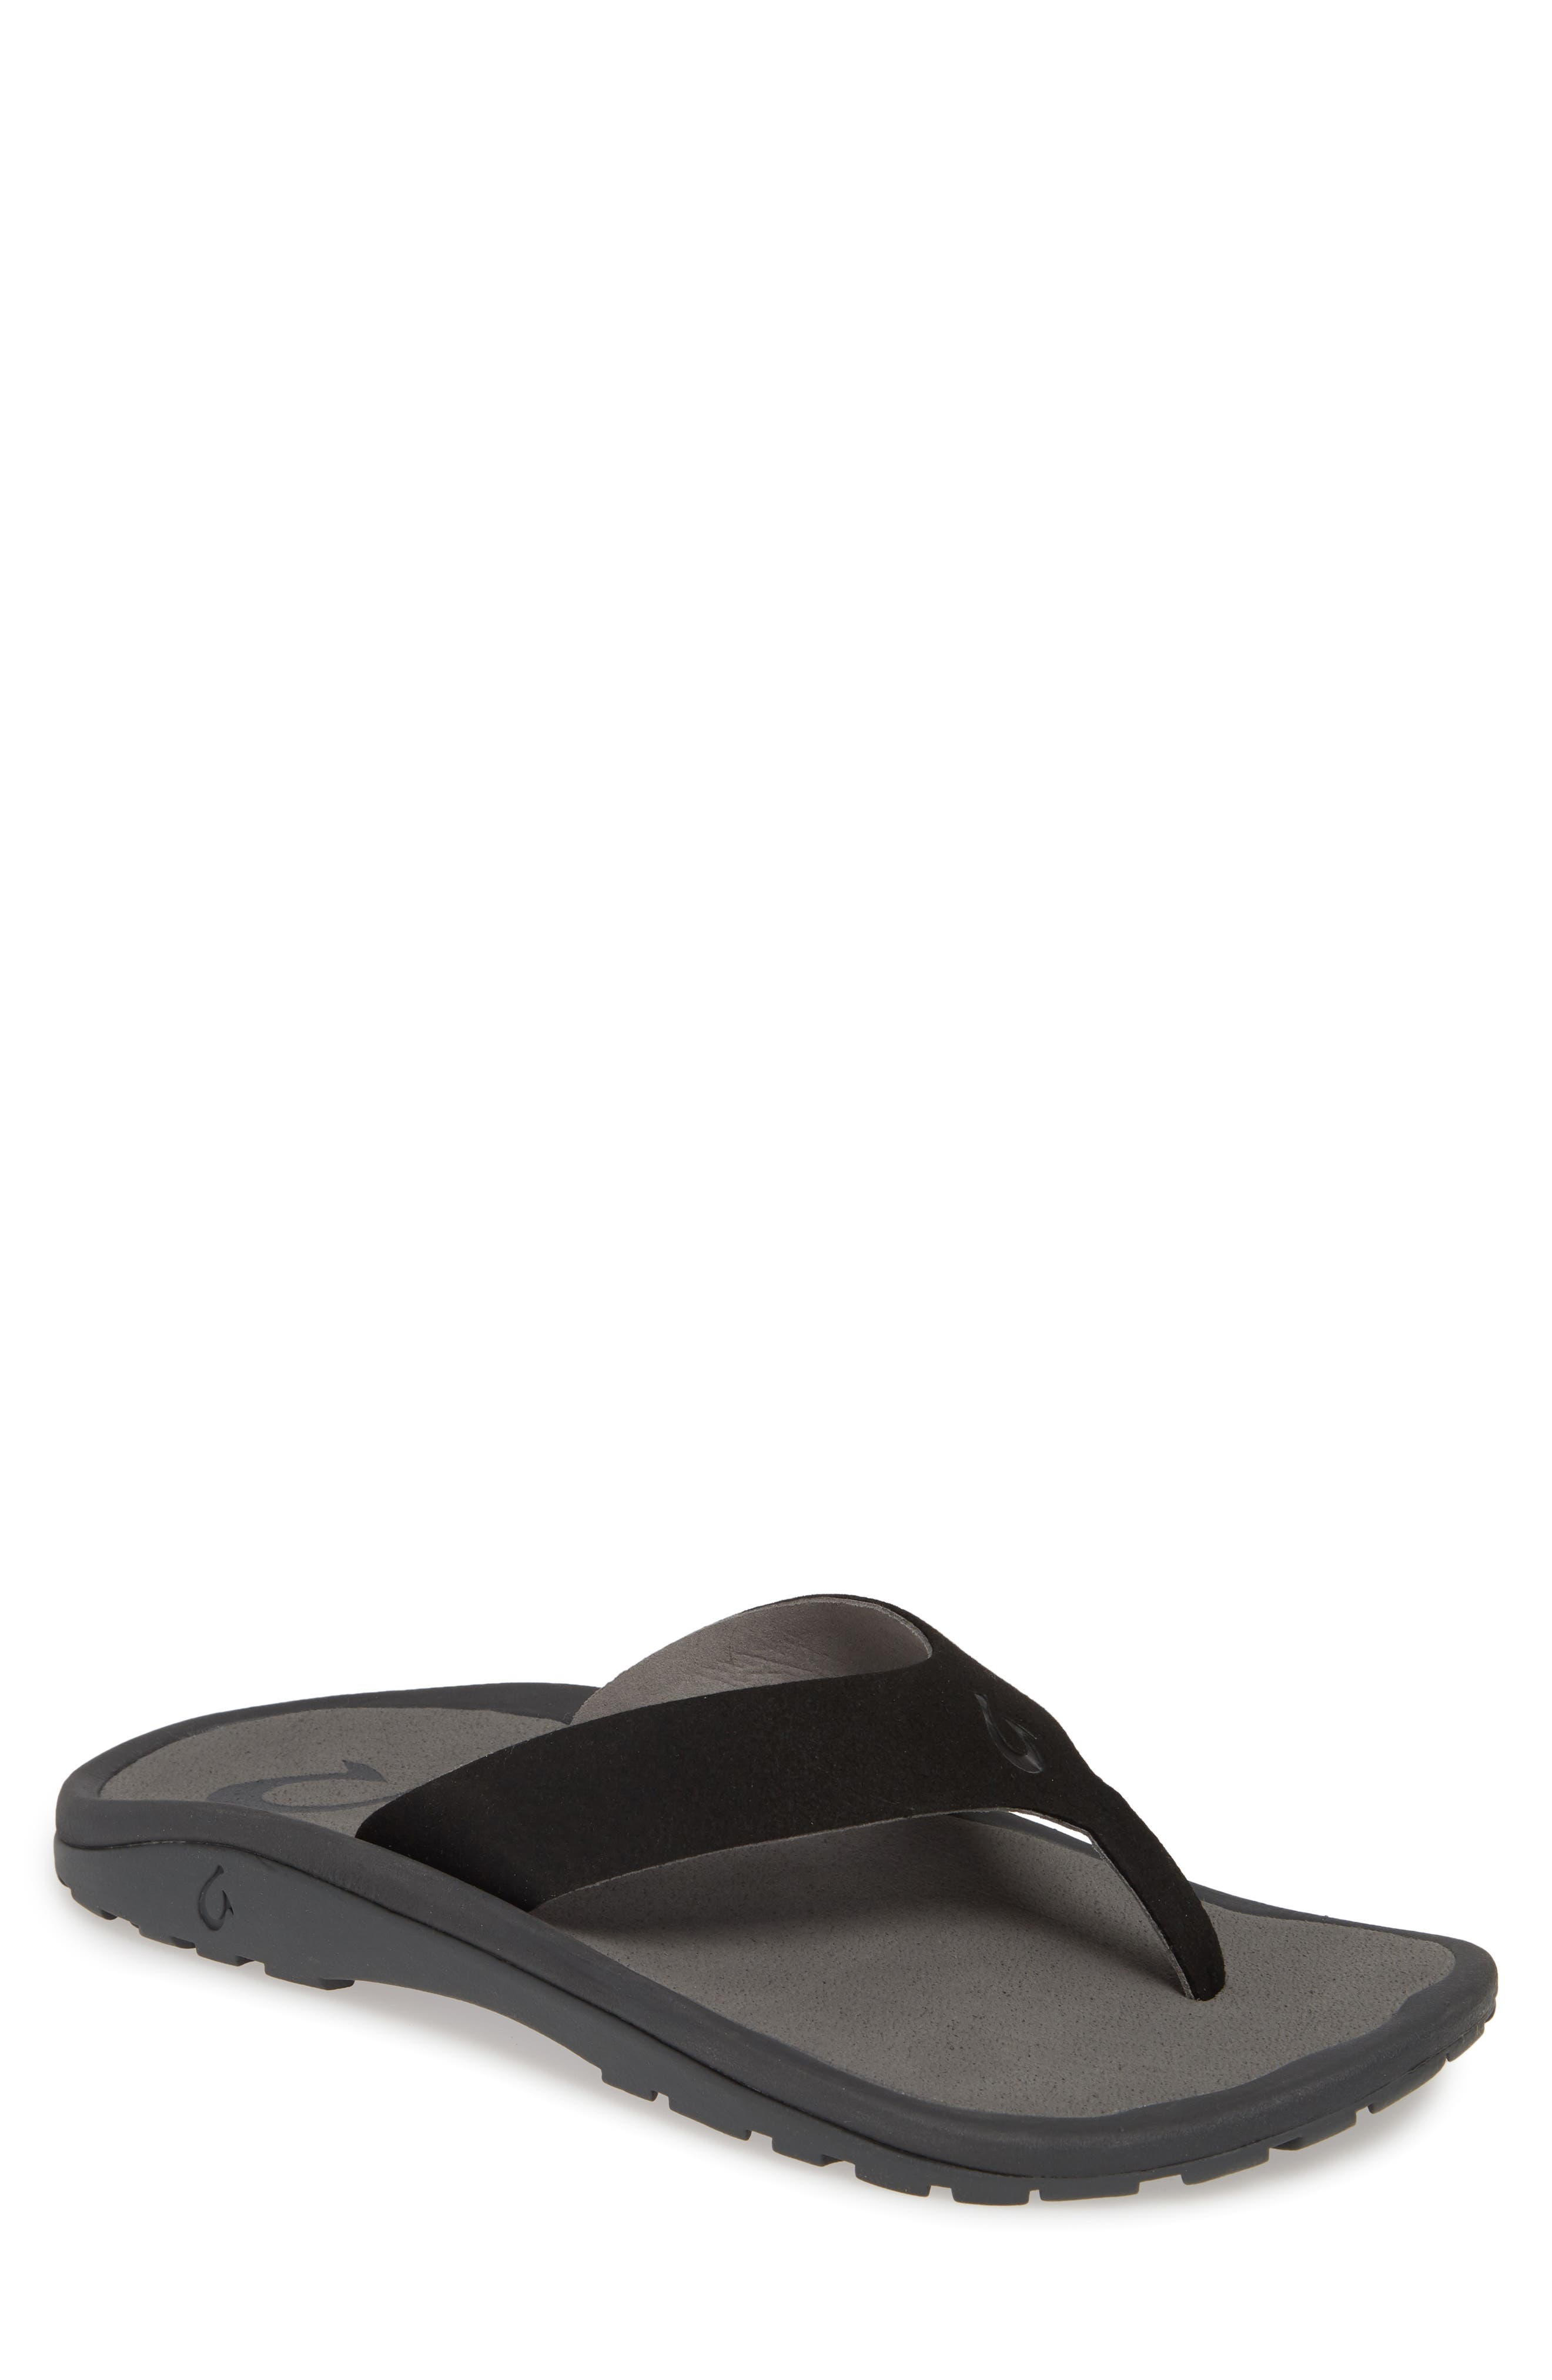 A seamless, one-piece upper enhances the all-day comfort of a beach-ready sandal fitted with a cushioned anatomical footbed and grippy textured sole. Style Name: Olukai Ohana Ho\\\'Okahi Flip Flop (Men). Style Number: 5474570. Available in stores.